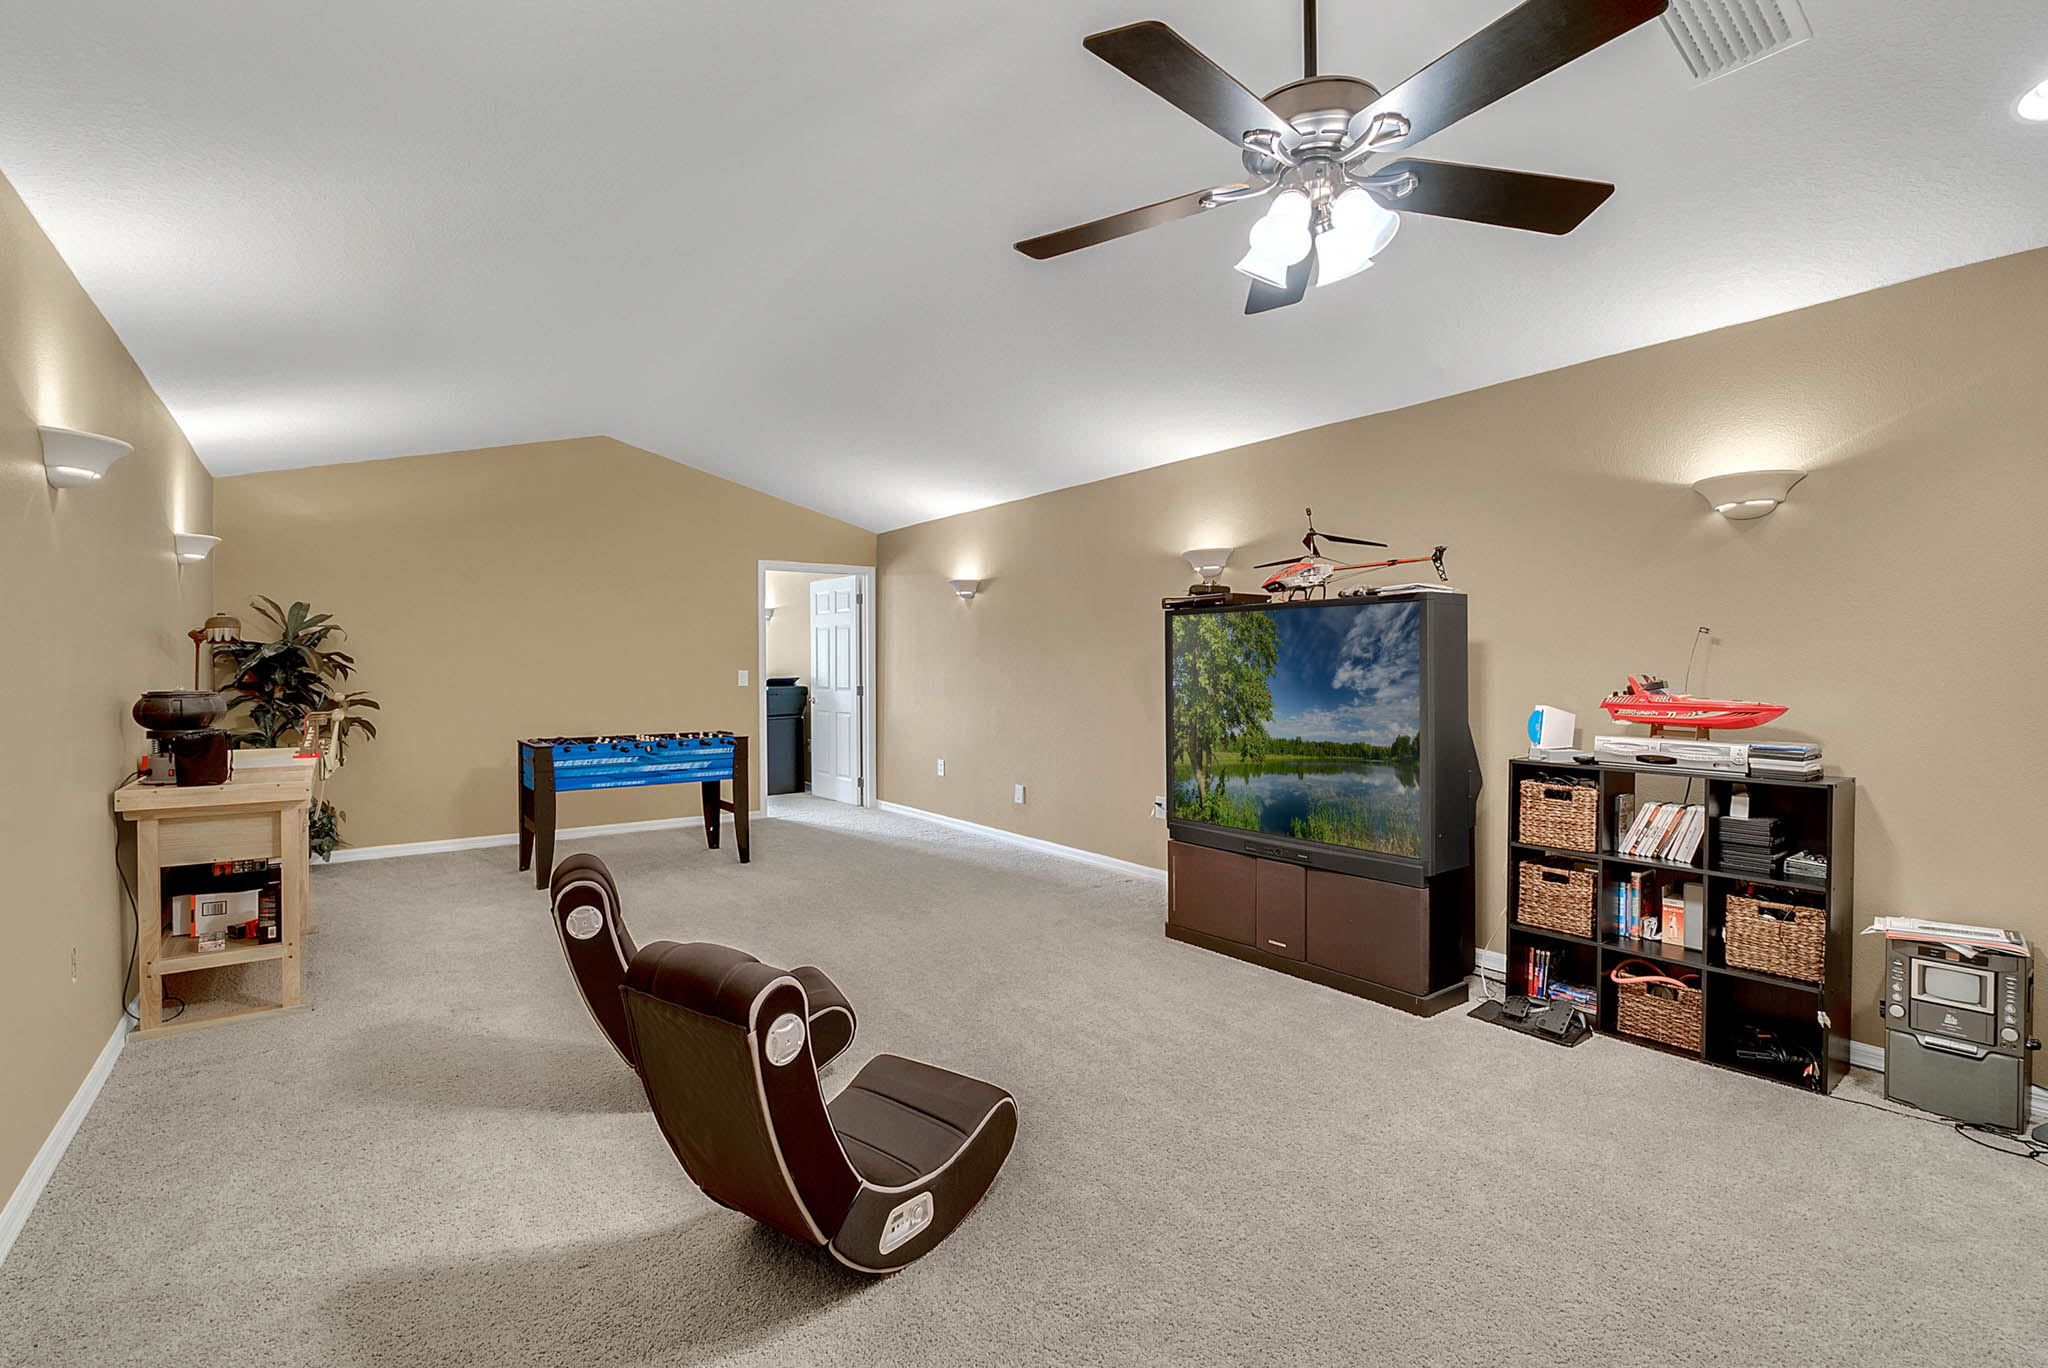 7919-Florida-Boys-Ranch-Rd--Groveland--FL-34736----17---Bonus-Room.jpg